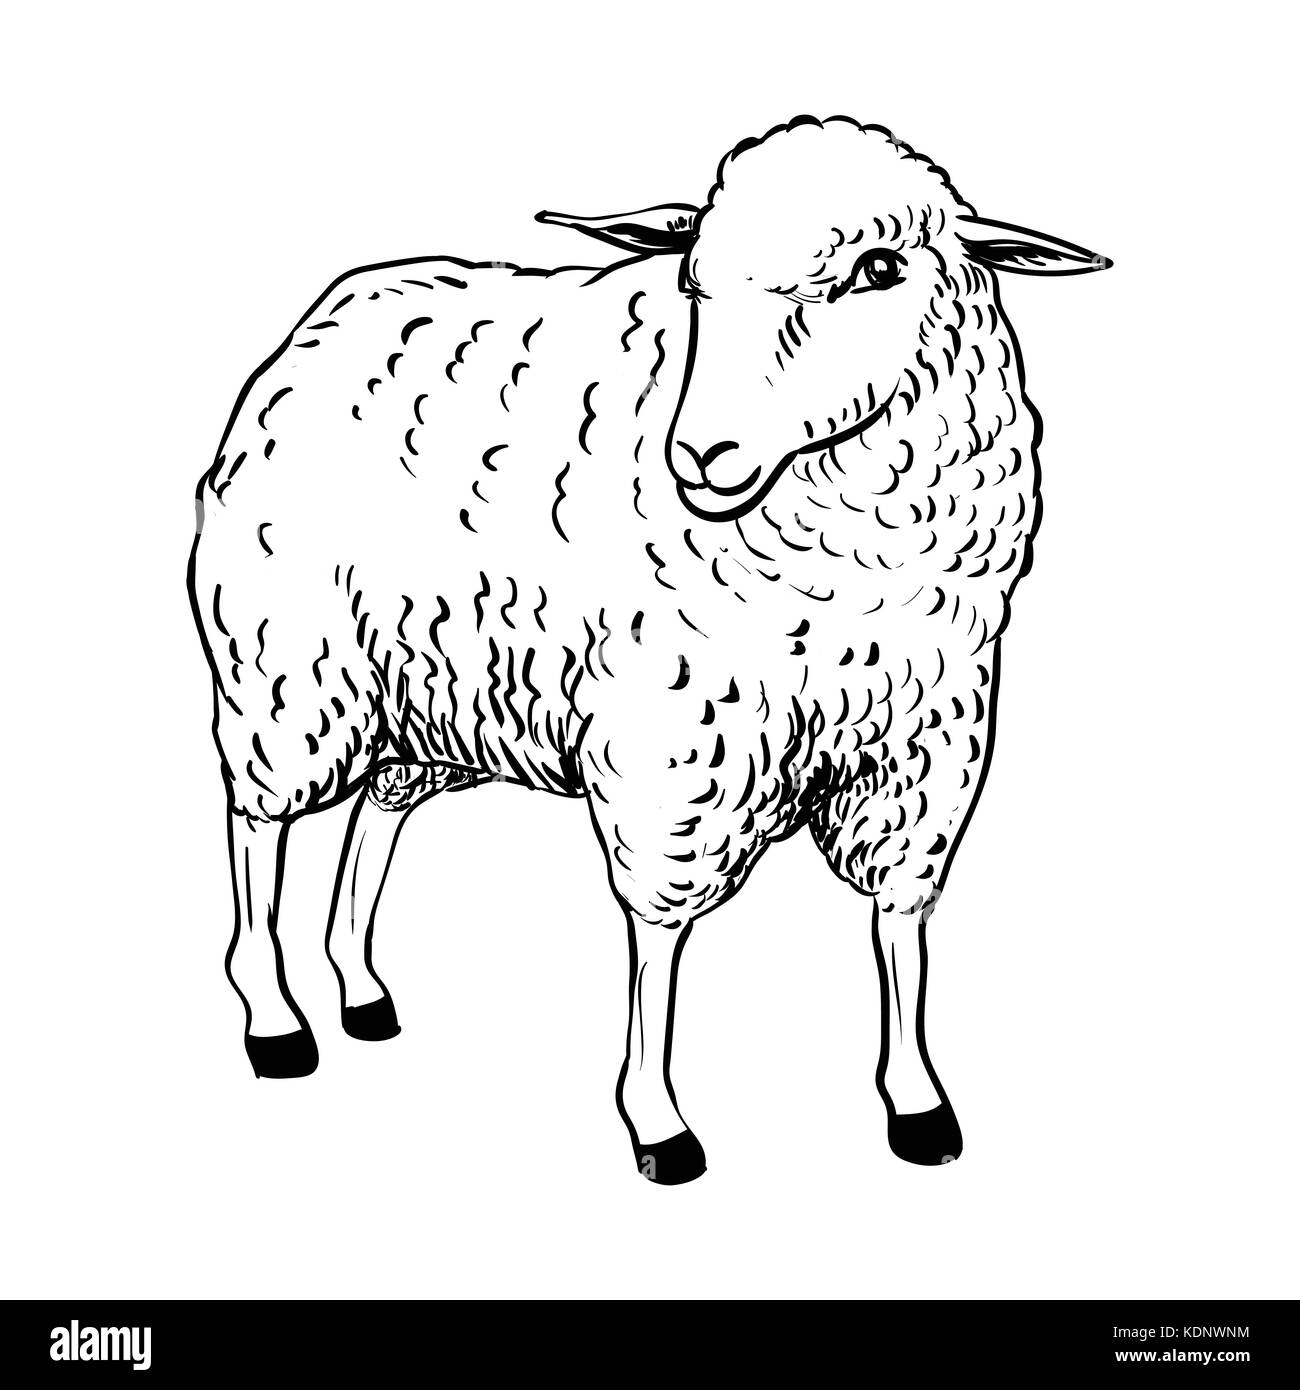 Hand drawing of Cartoon Sheep, Sketch design for coloring book.Vector Illustration. - Vector Illustration - Stock Vector